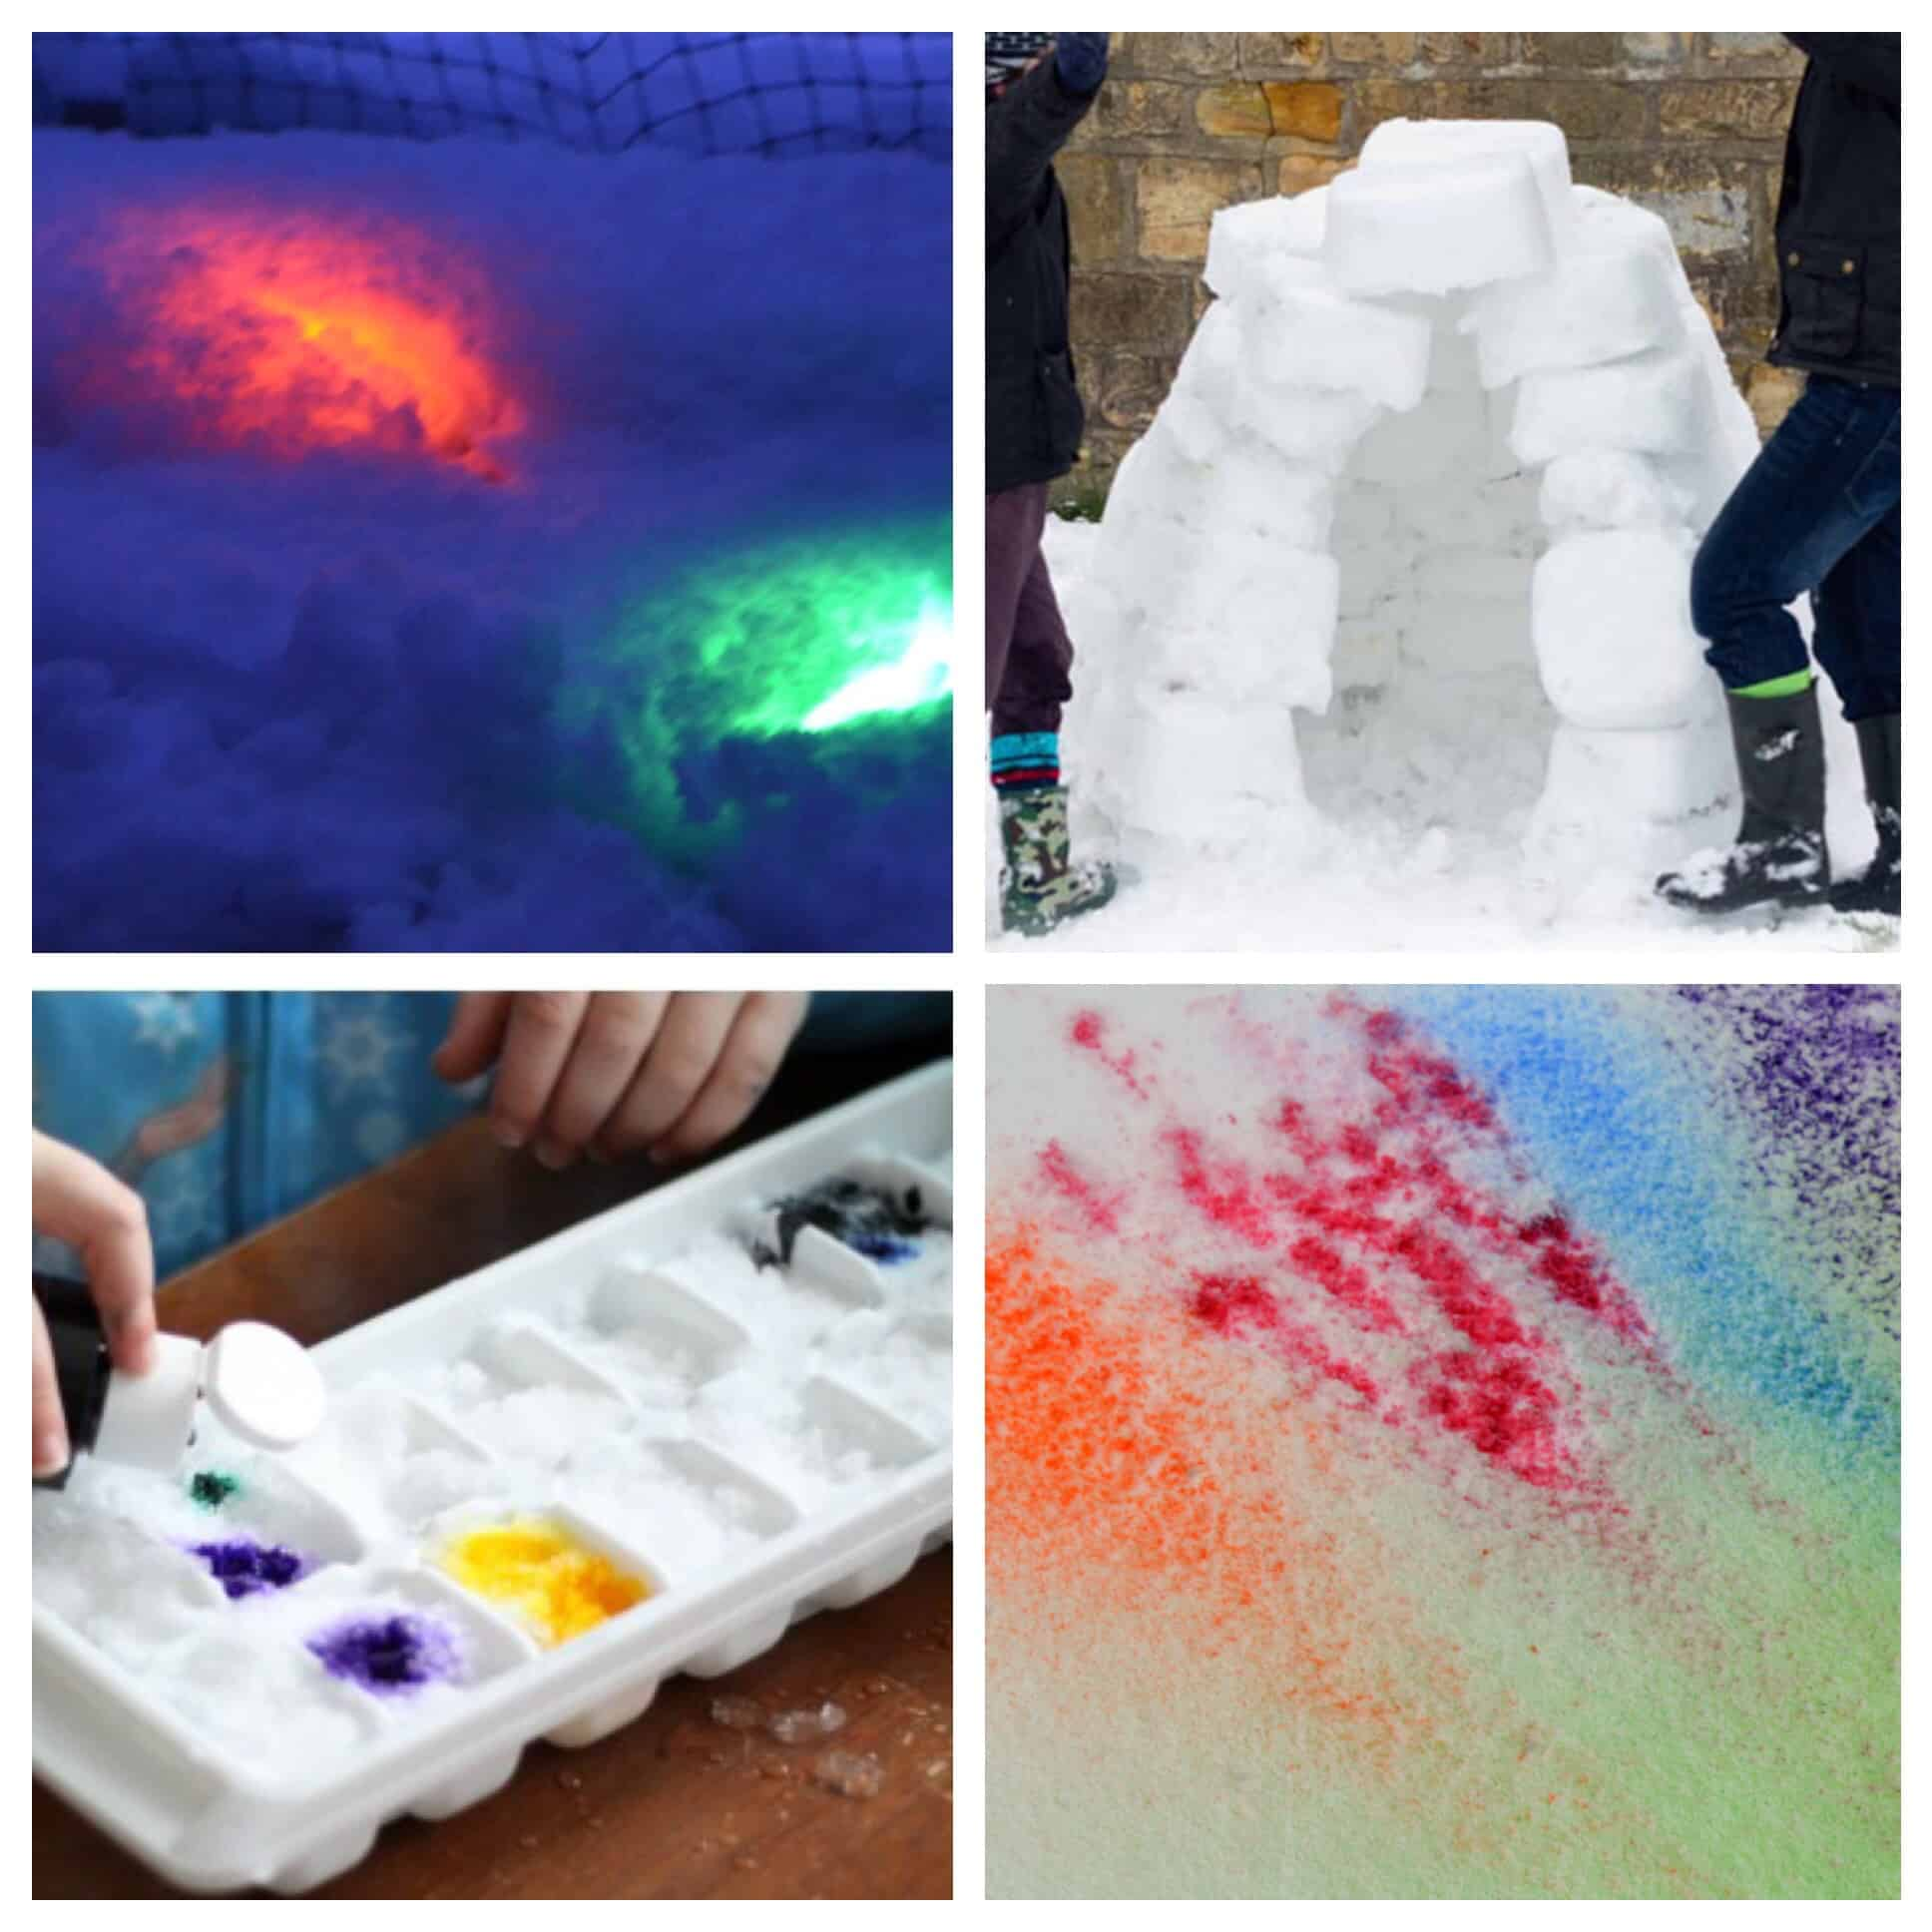 There are so many fun ways to play and learn with snow! From colored bubbles and color mixing to building igloos the play opportunities are endless!